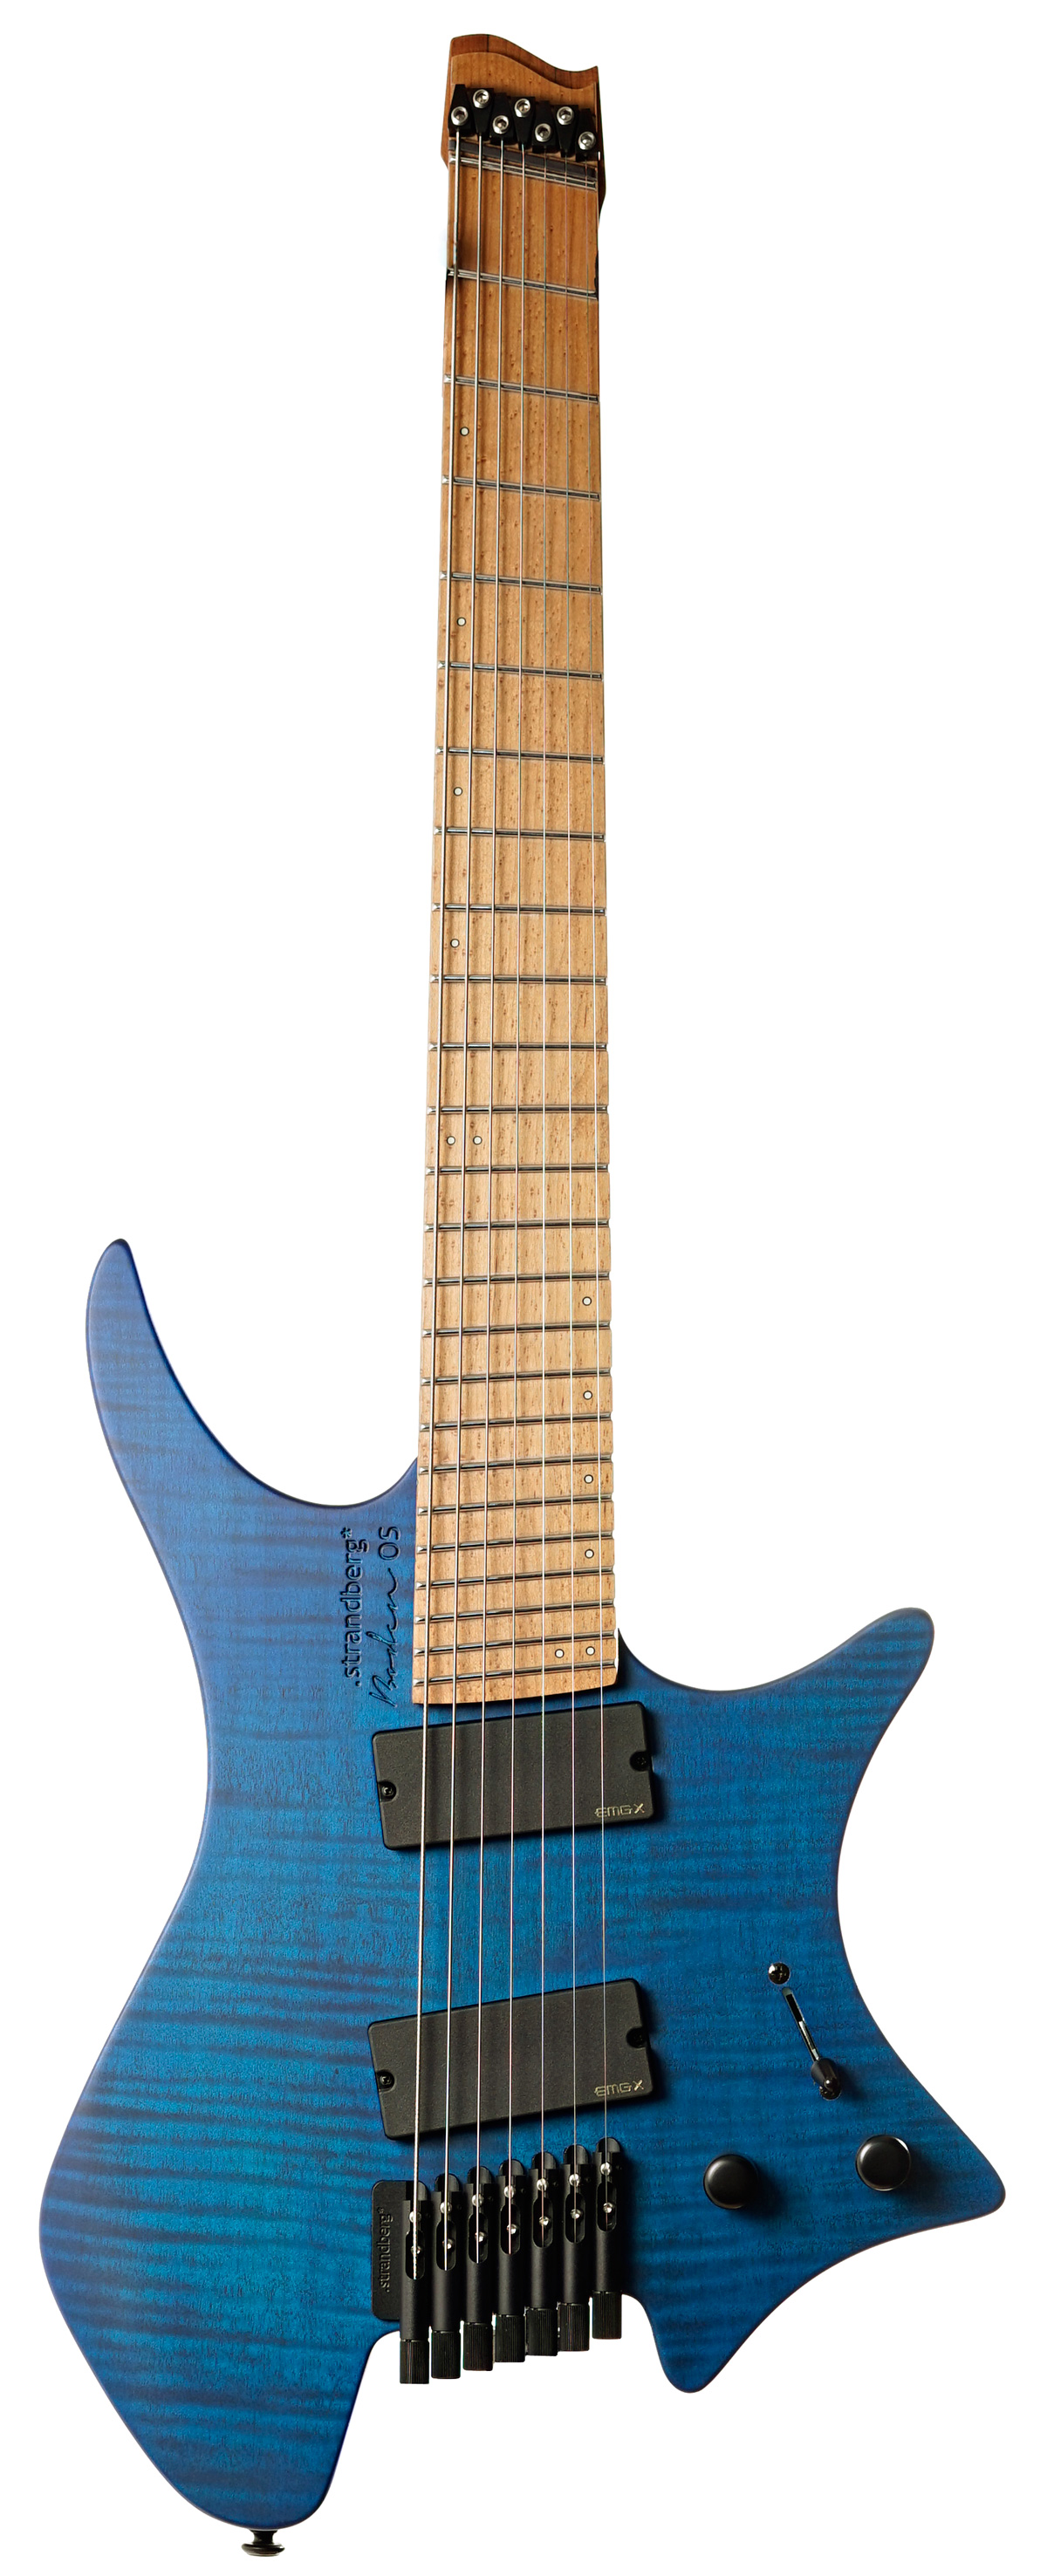 Strandberg boden os 7 special edition blue maple for Strandberg boden 7